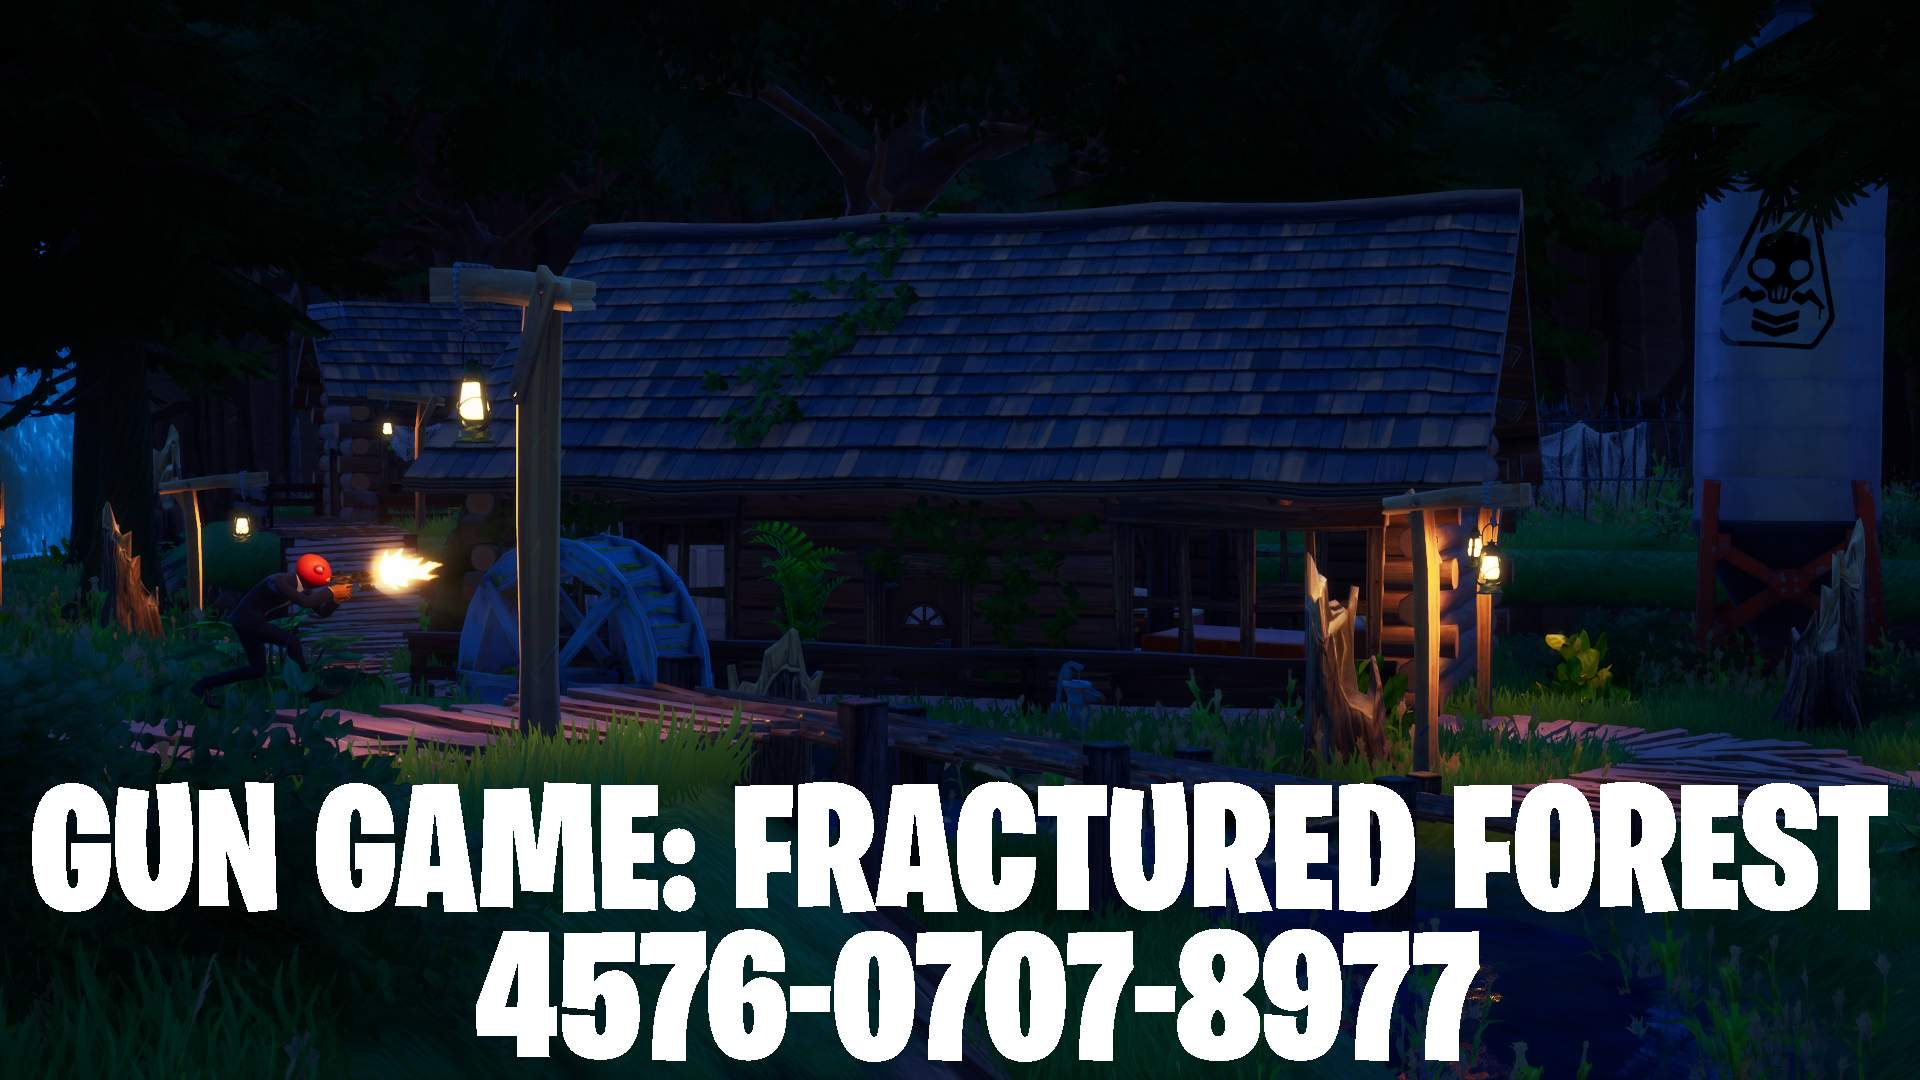 GUN GAME: FRACTURED FOREST